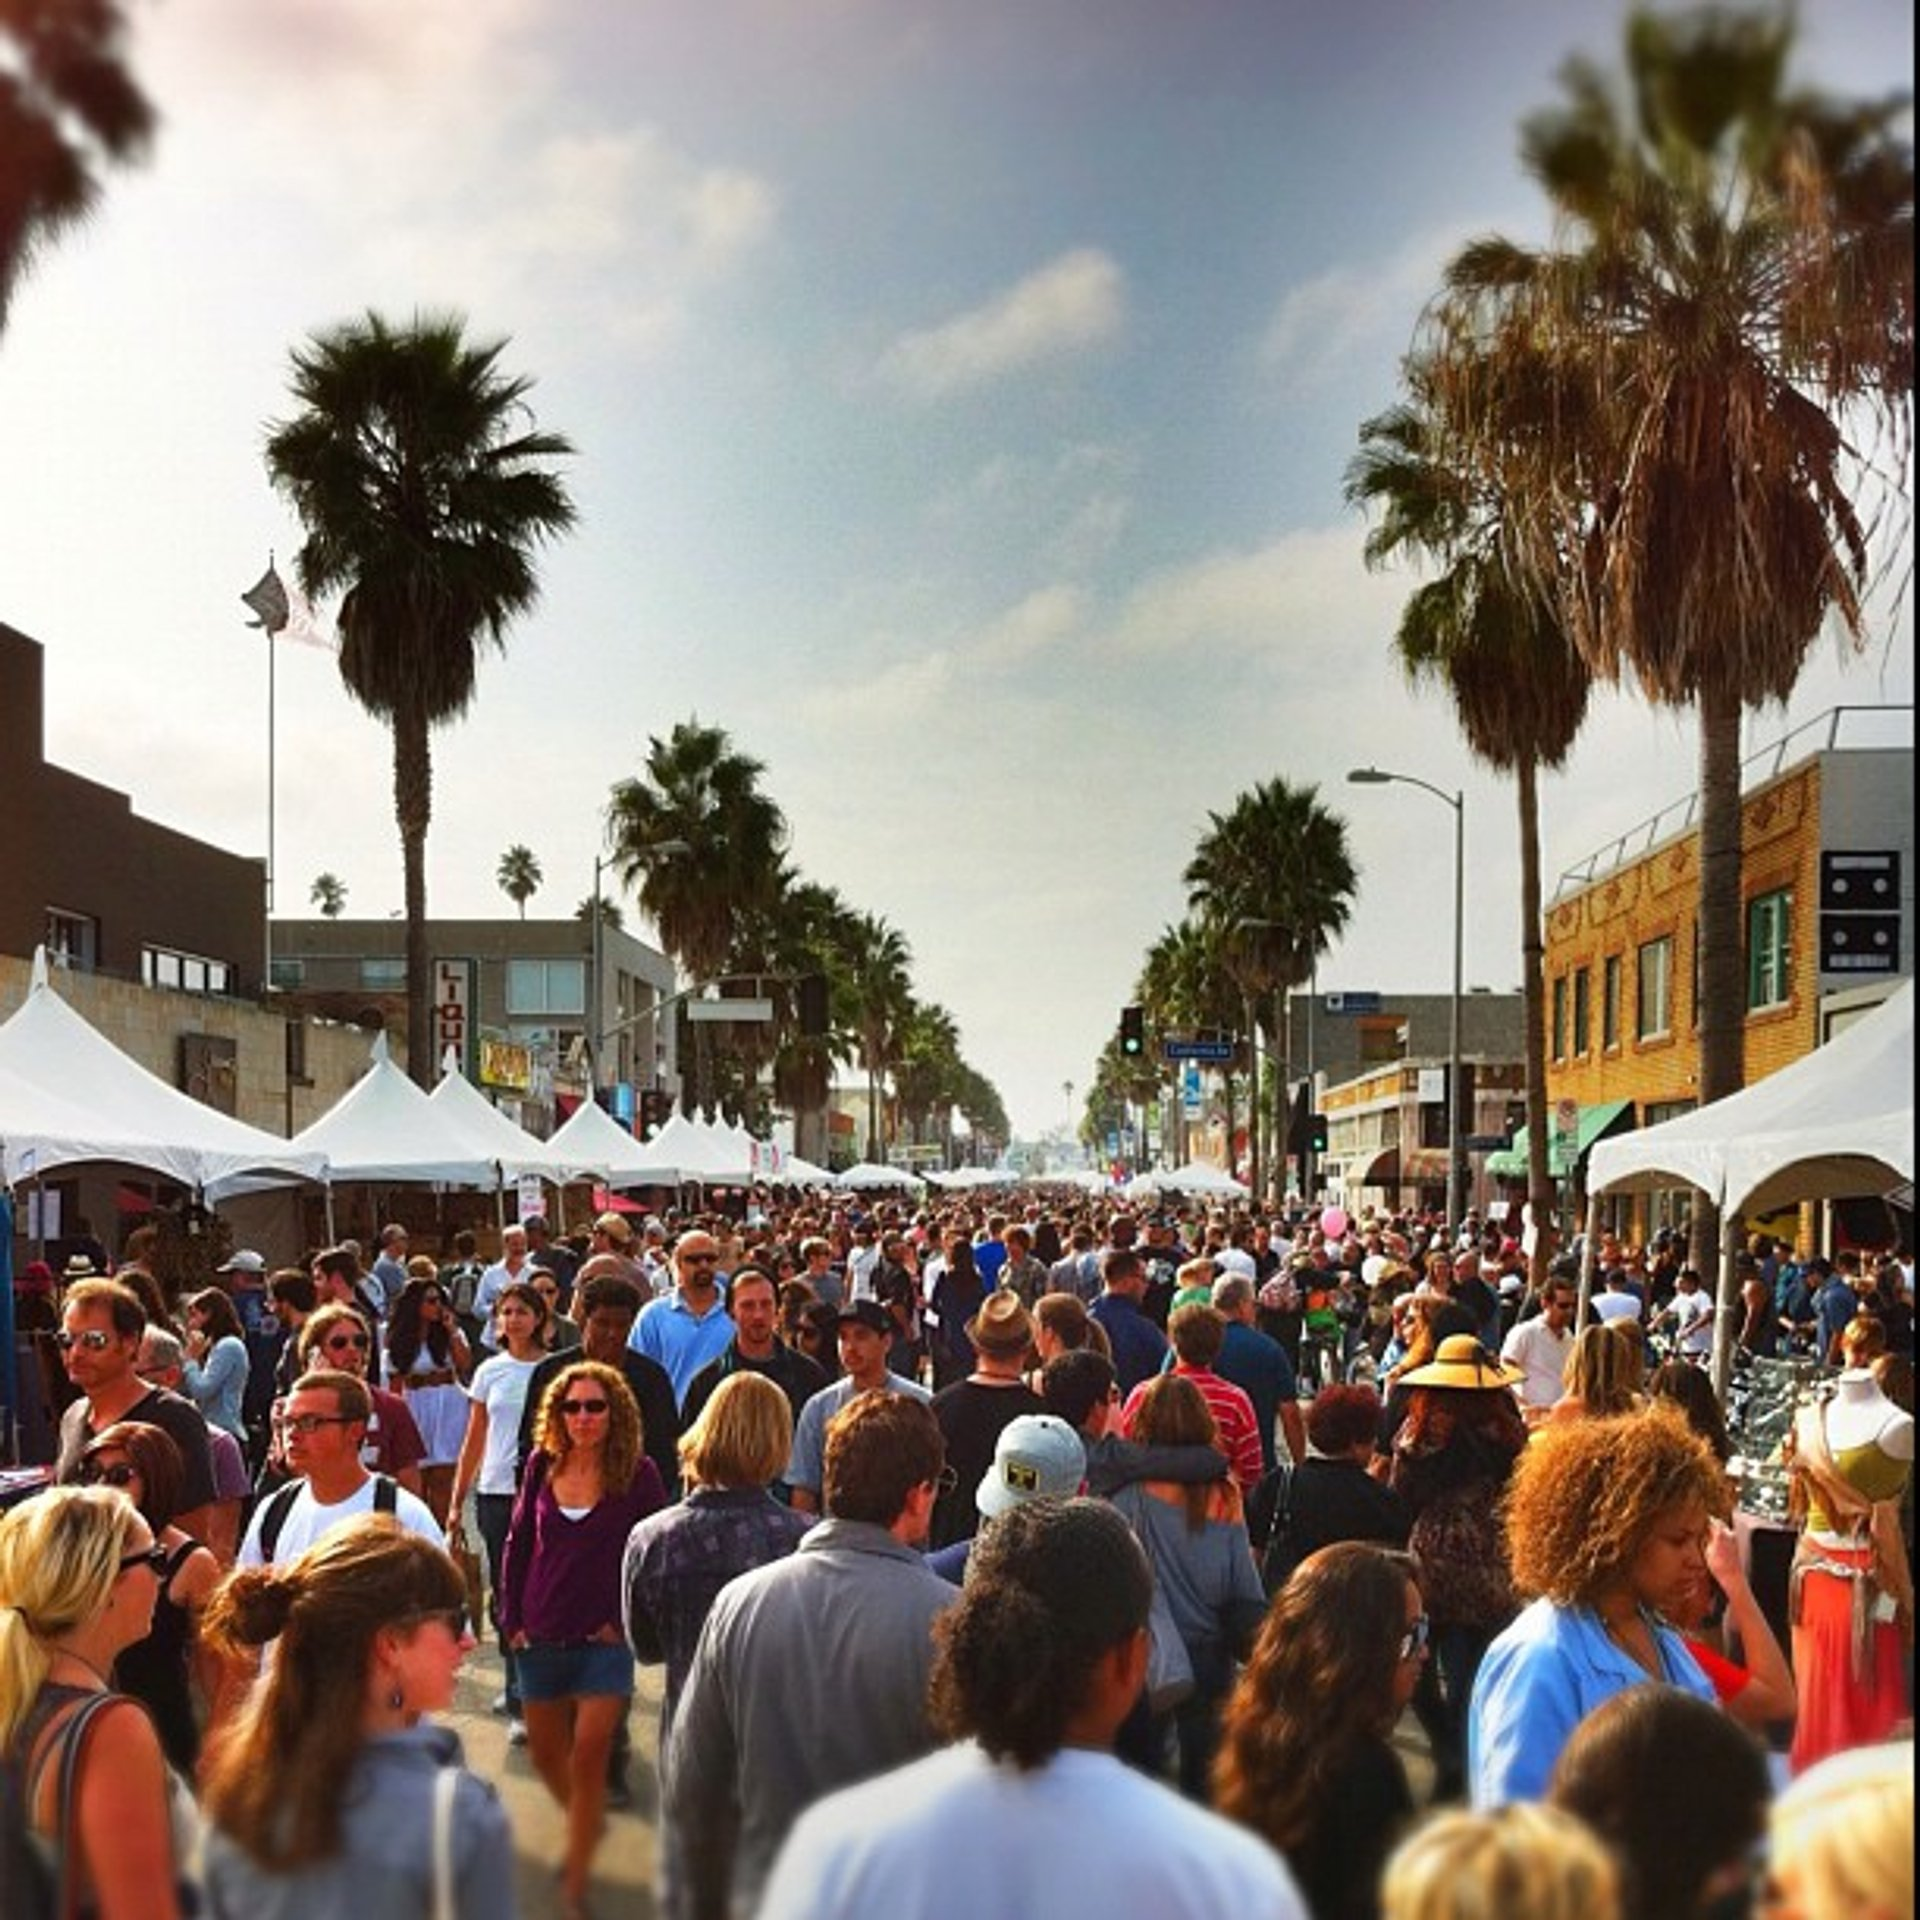 Abbot Kinney Festival in Los Angeles 2020 - Best Time